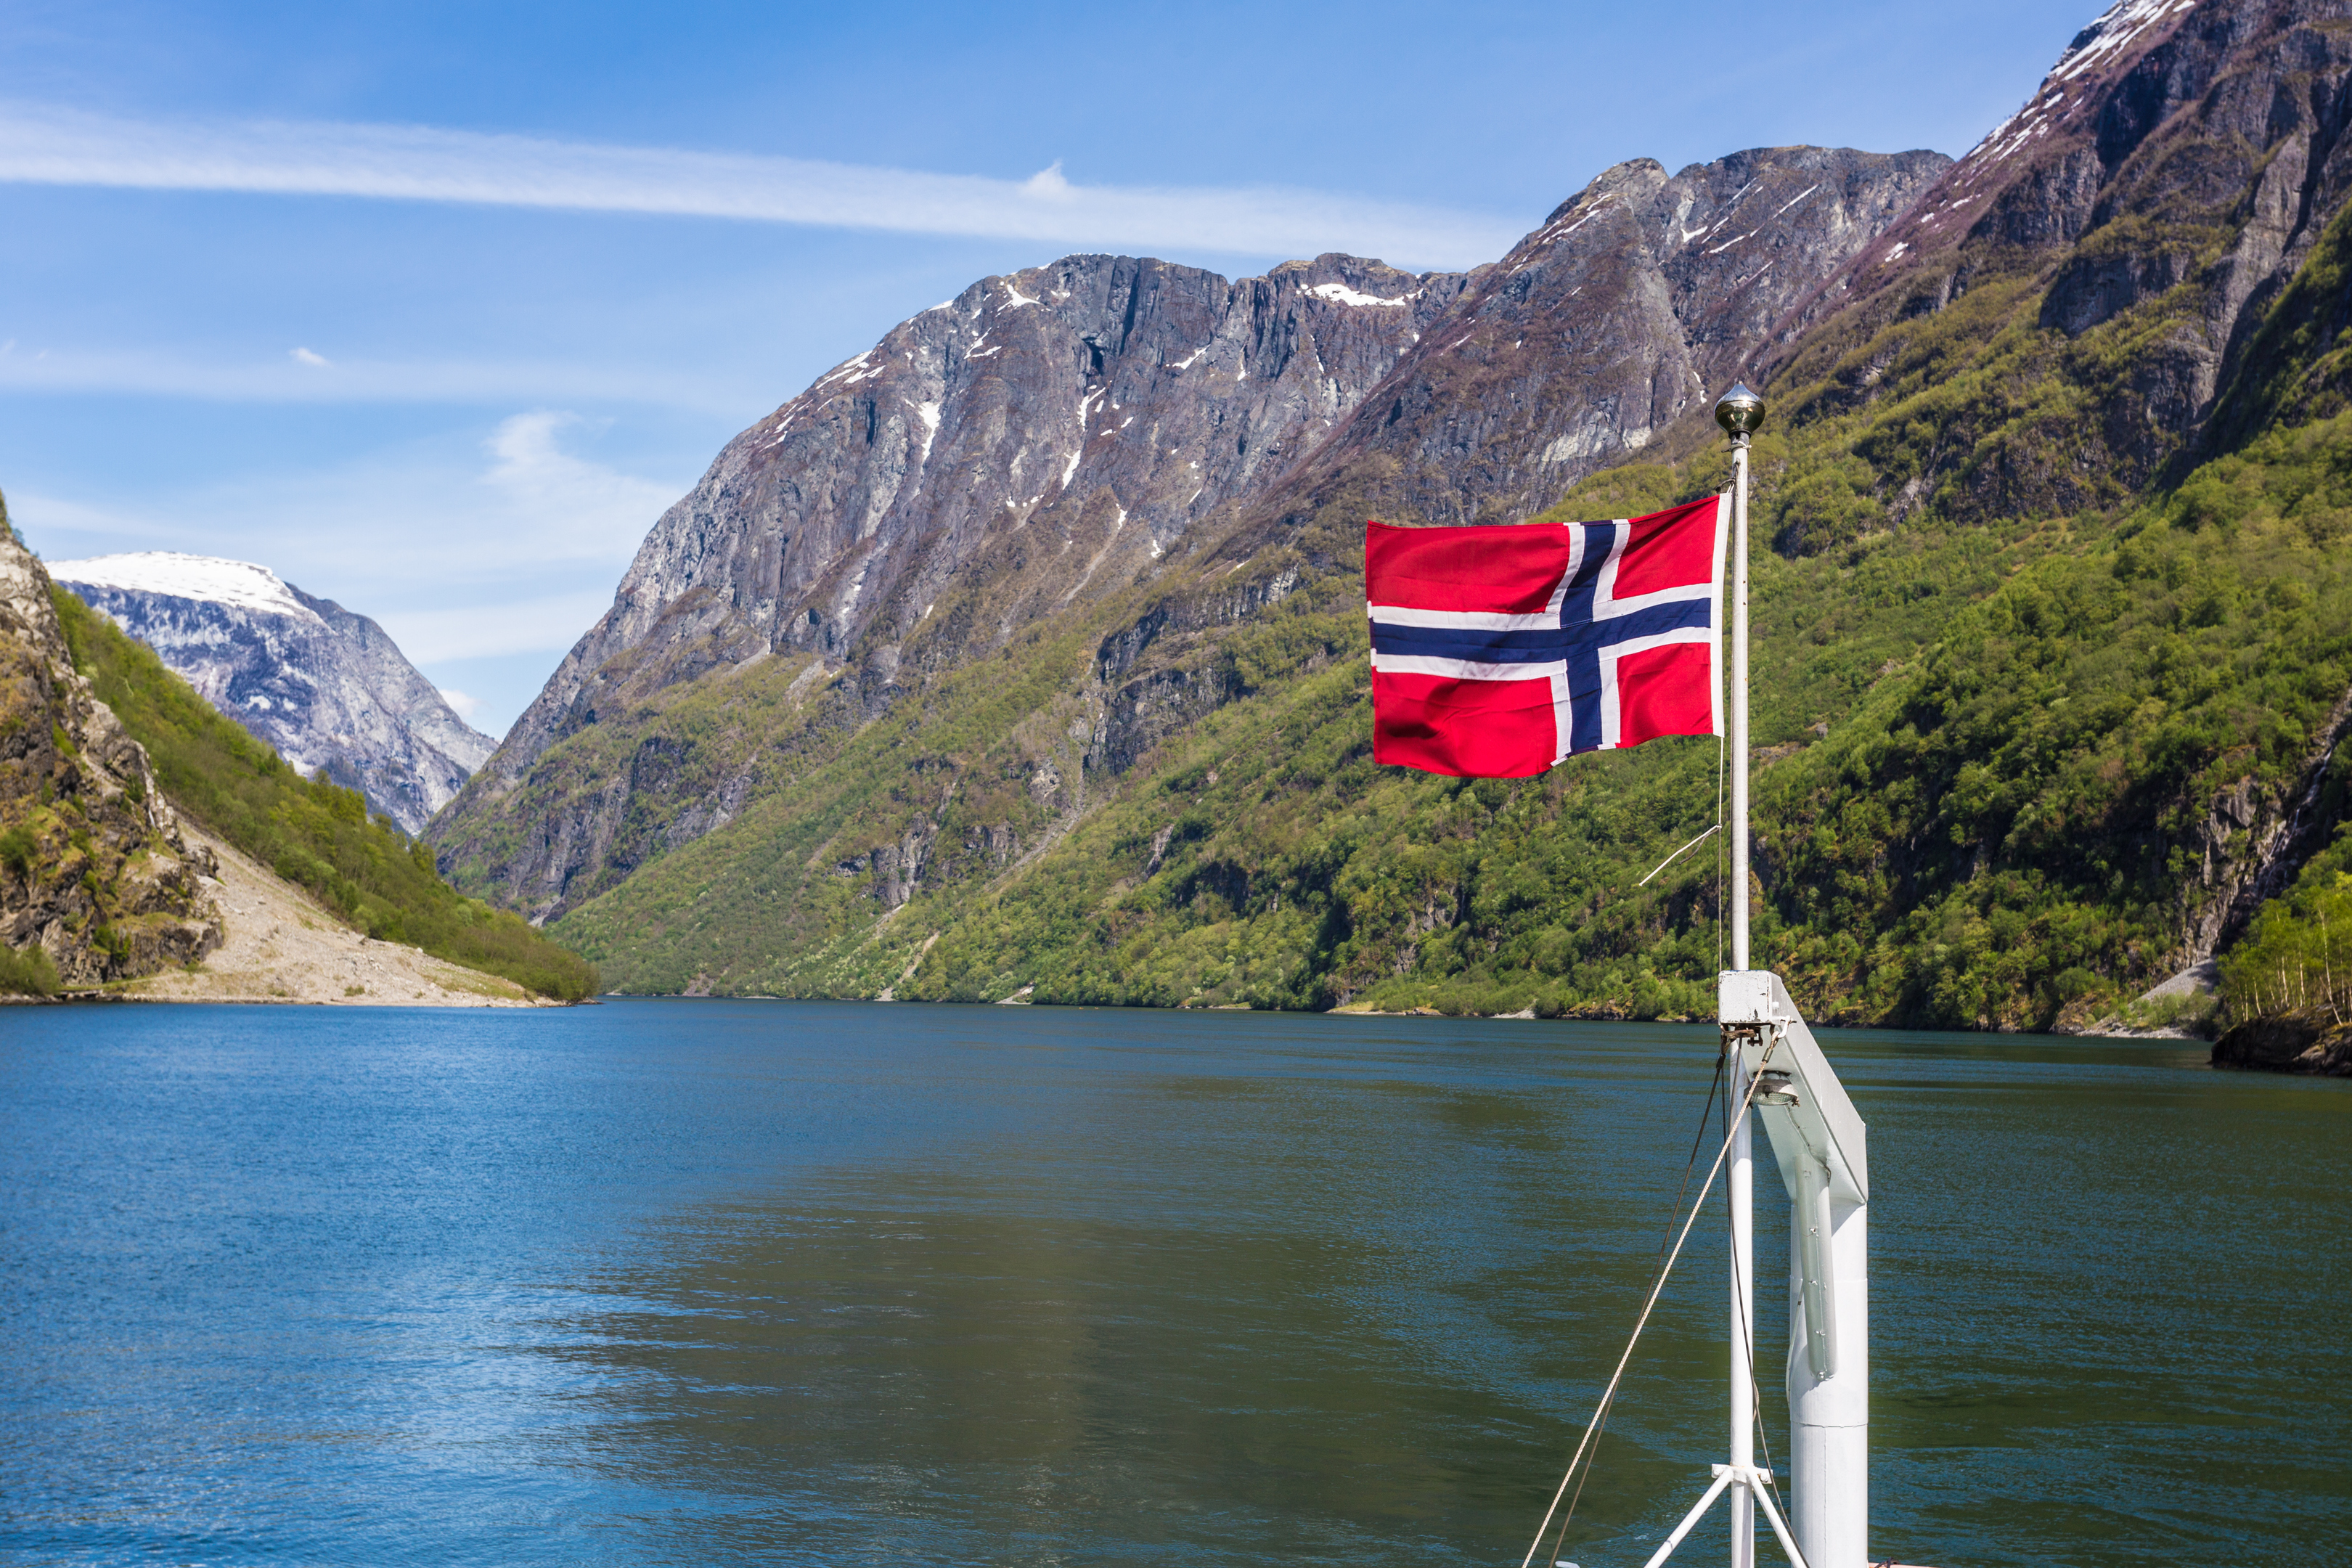 Norway sovereign wealth fund with move to renewable energy investment.